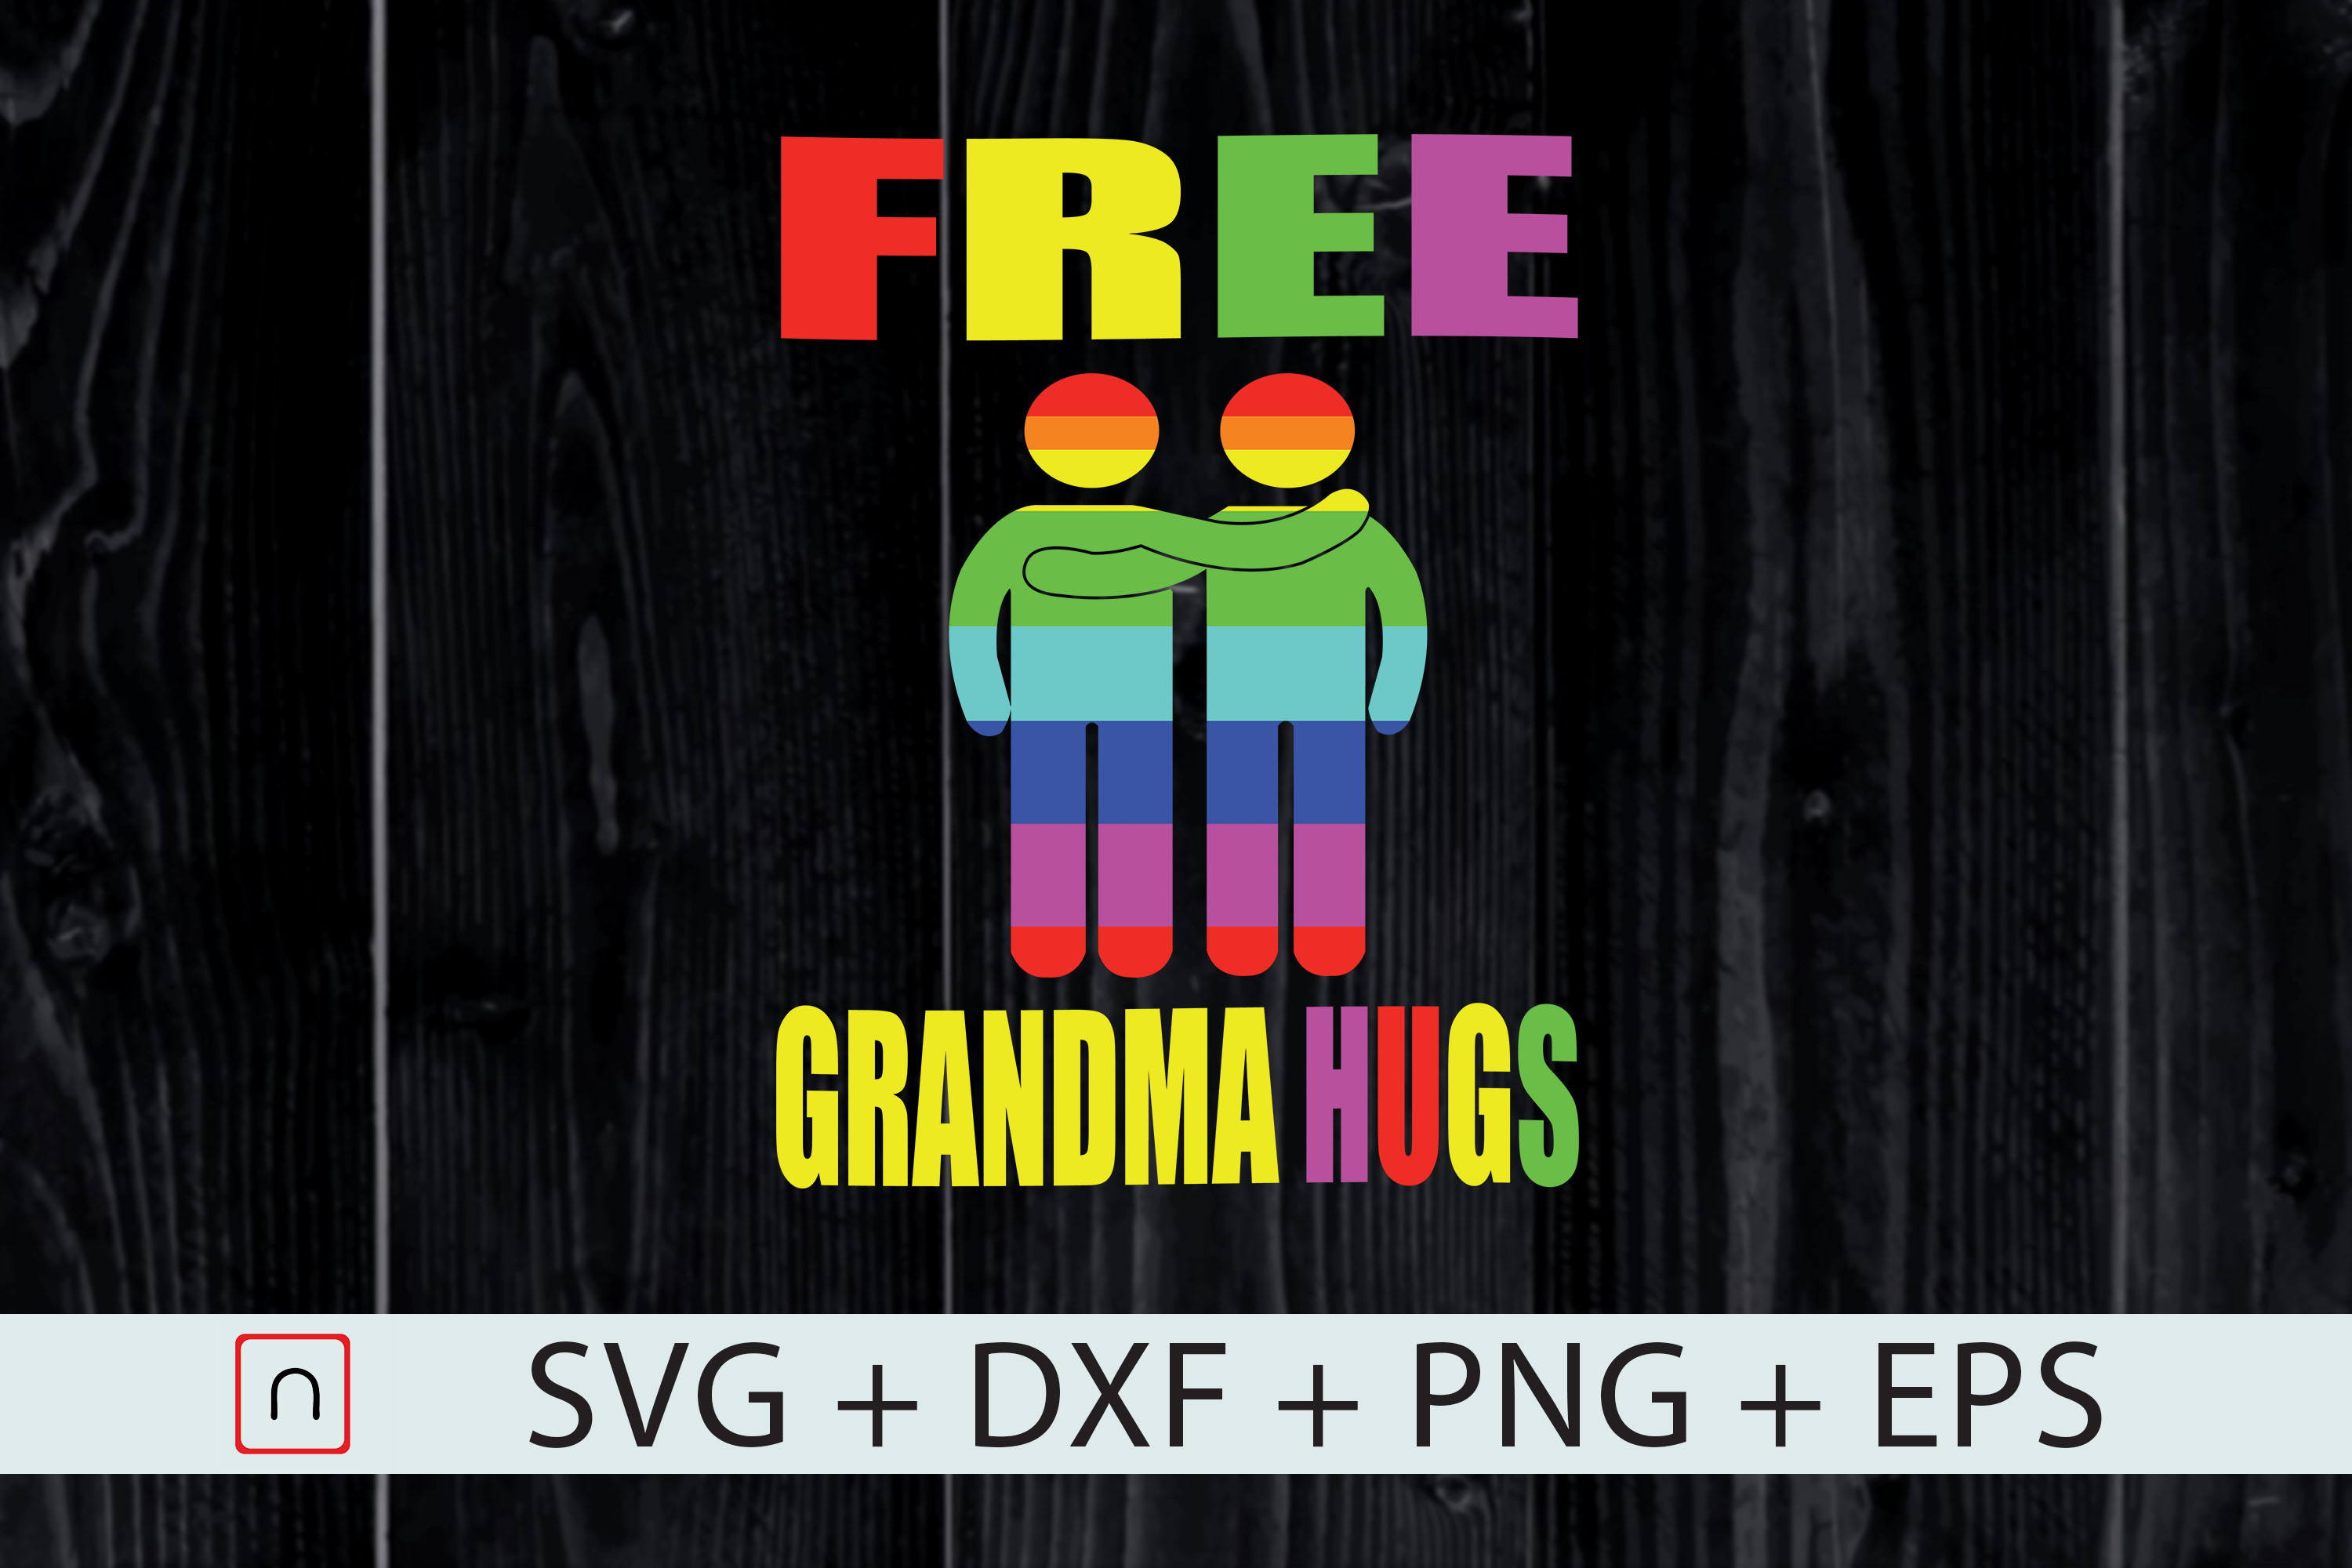 Download Free Lgbt Free Hugs Grandma Gay Pride Cricut Graphic By Novalia for Cricut Explore, Silhouette and other cutting machines.